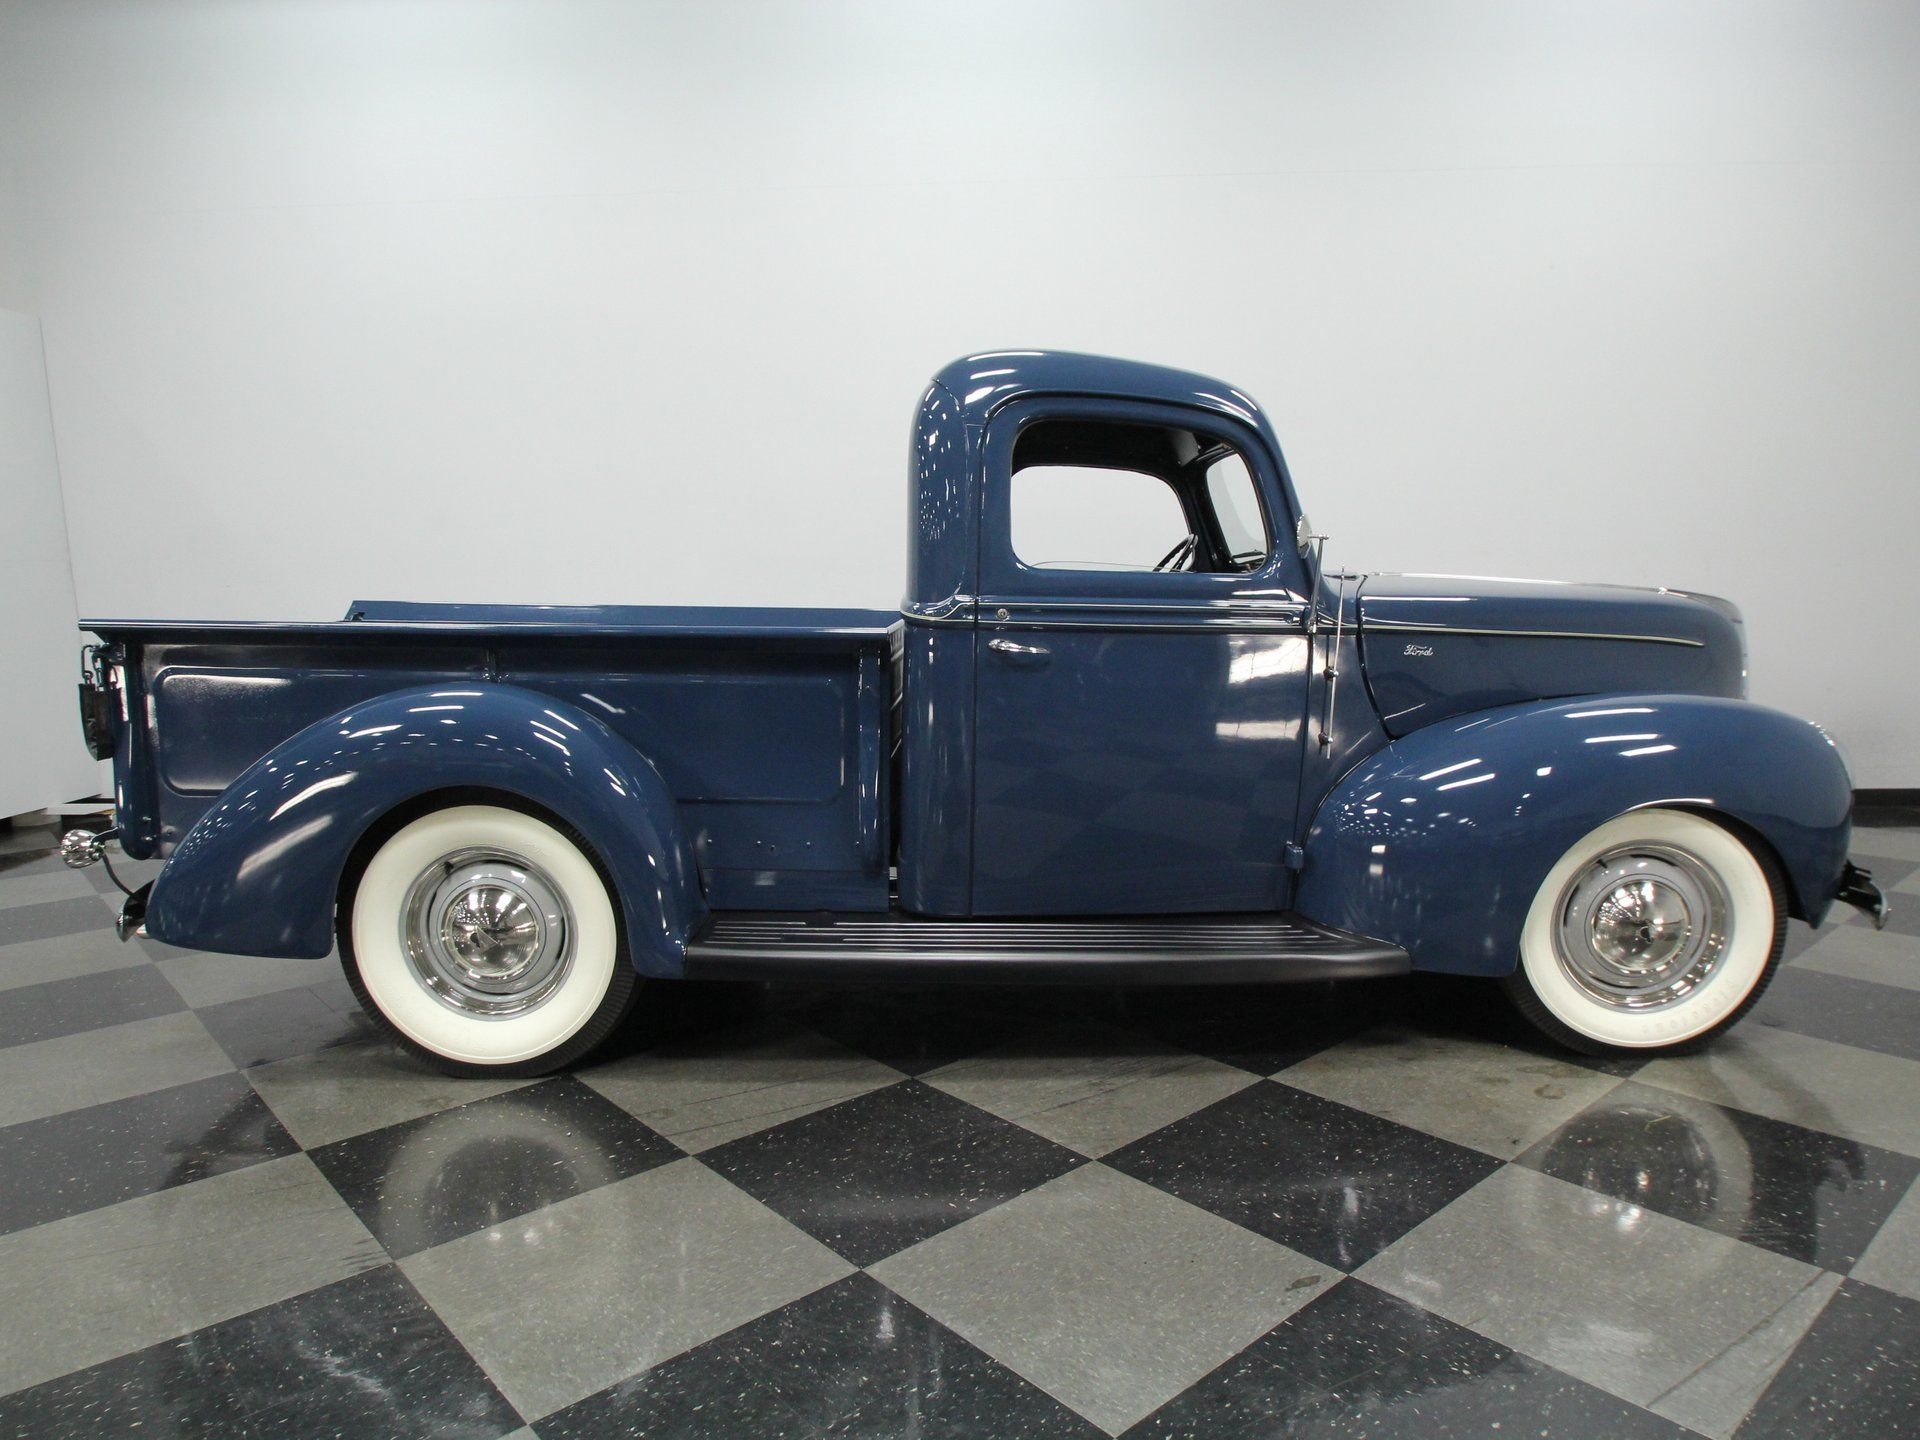 1940 Ford Pickup Classic Cars For Sale Streetside Classics In 2021 1940 Ford Ford Pickup 1940 Ford Pickup